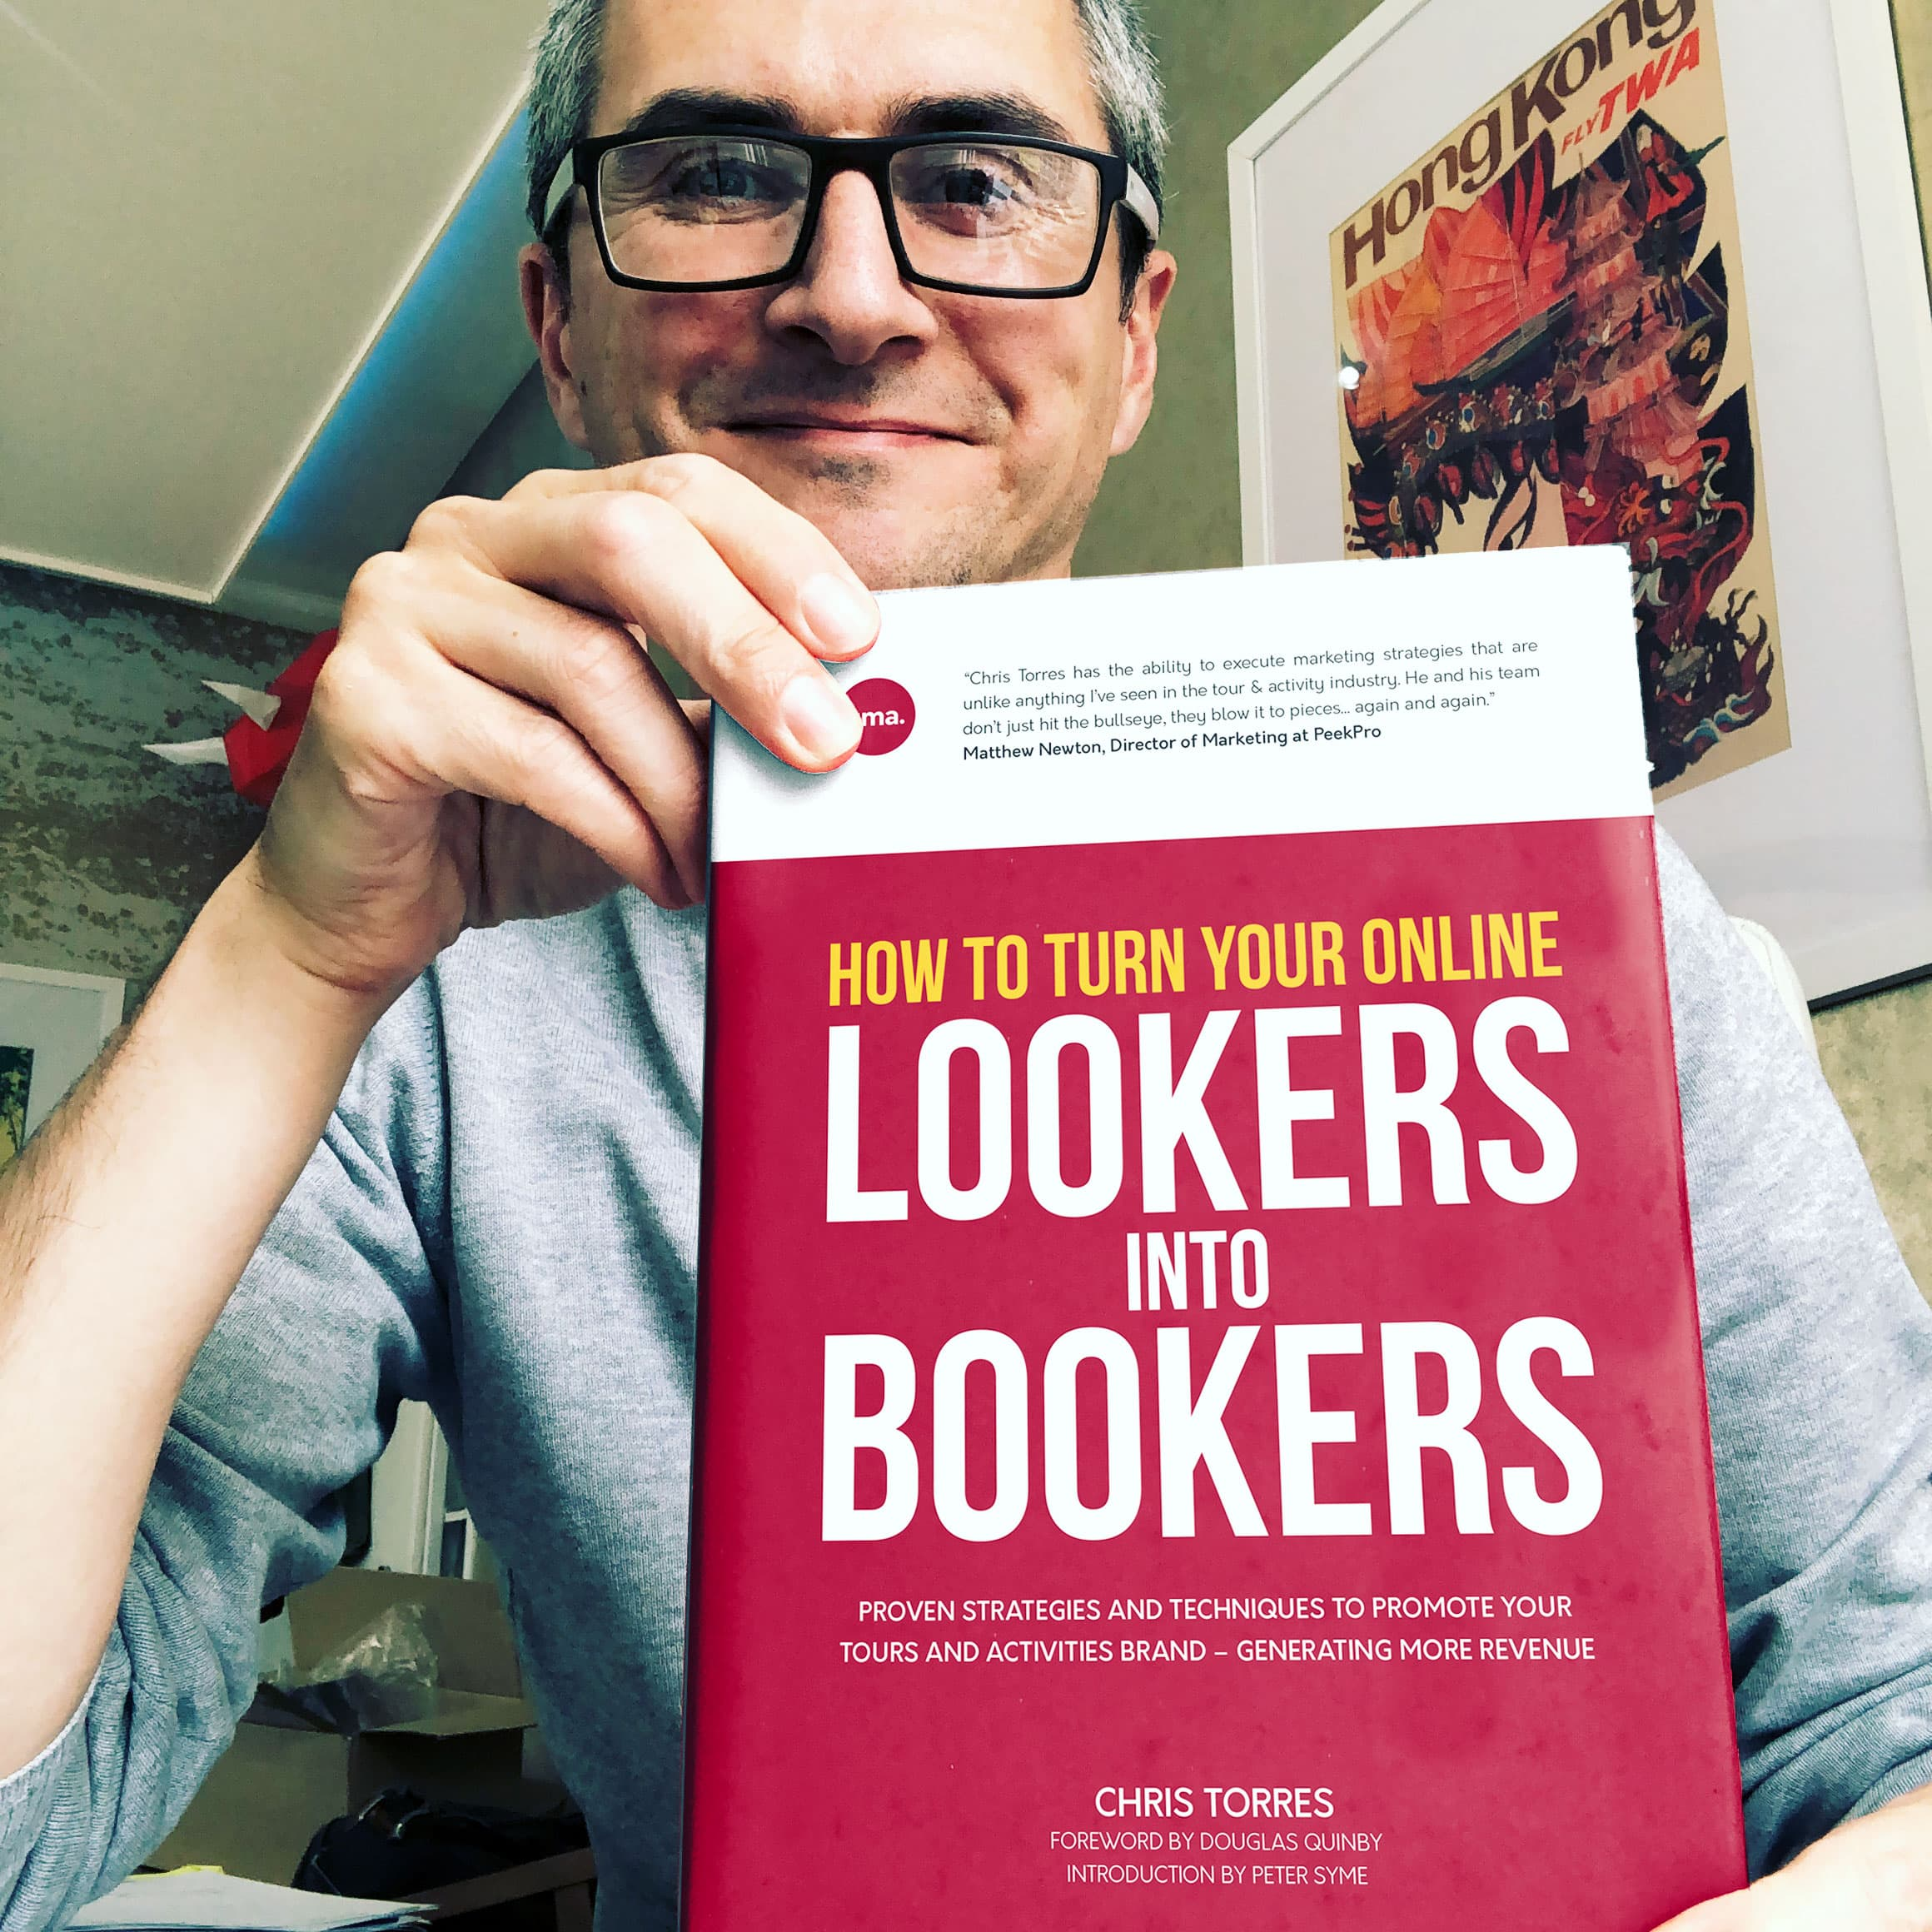 Lookers Into Bookers